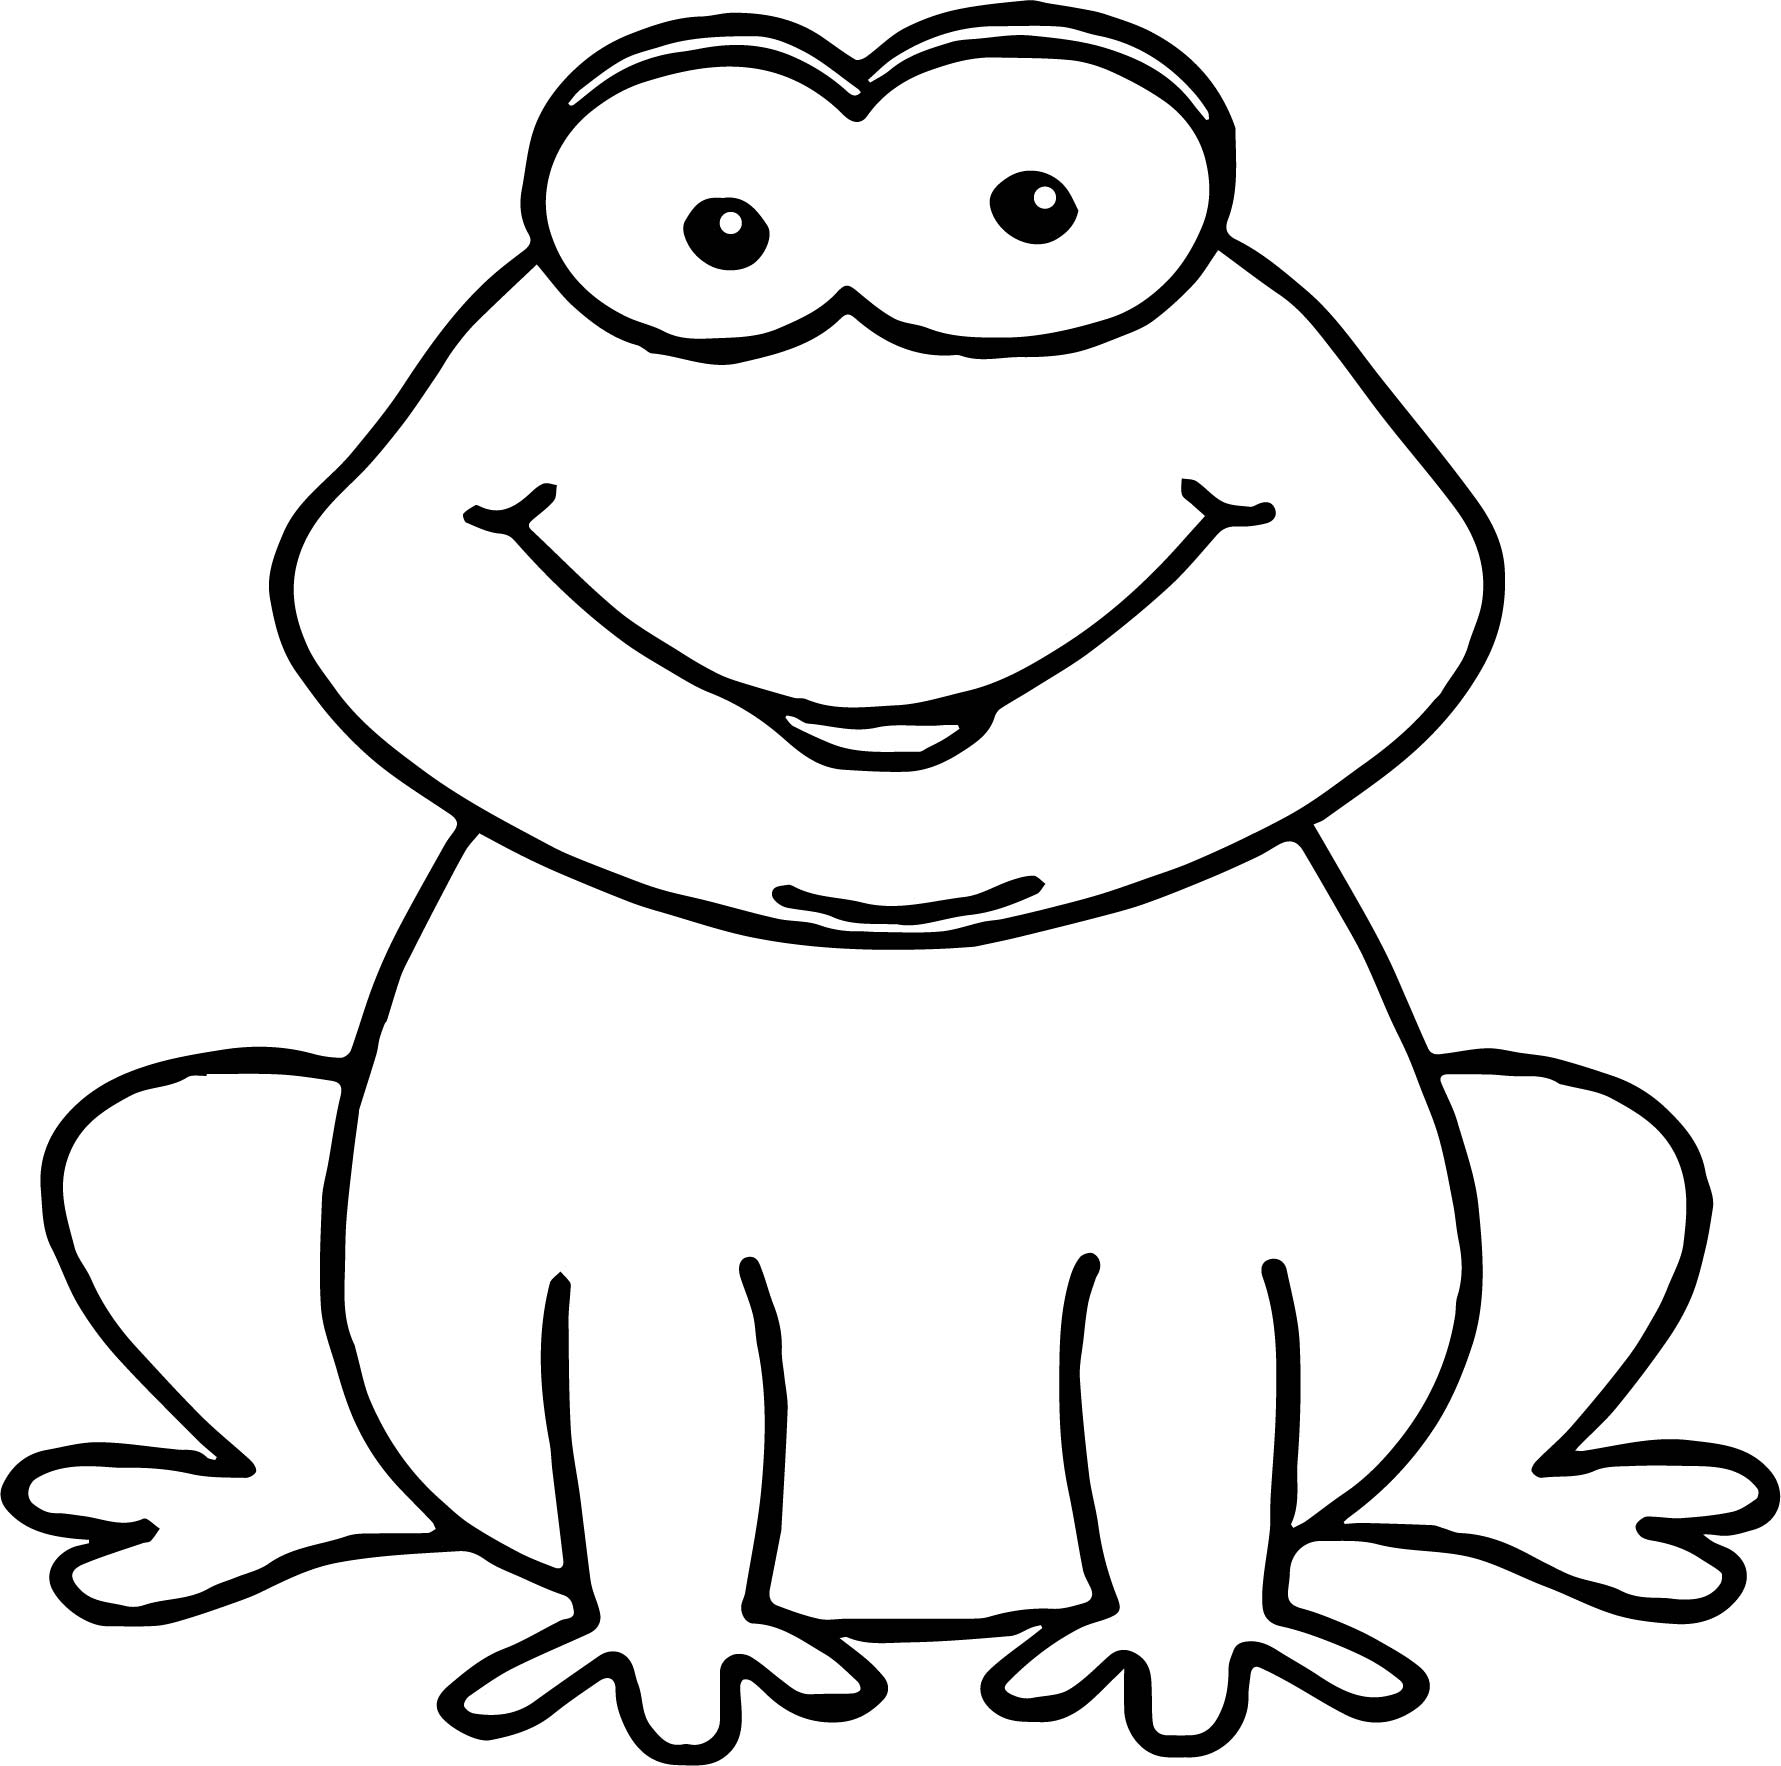 Wait Frog Coloring Page